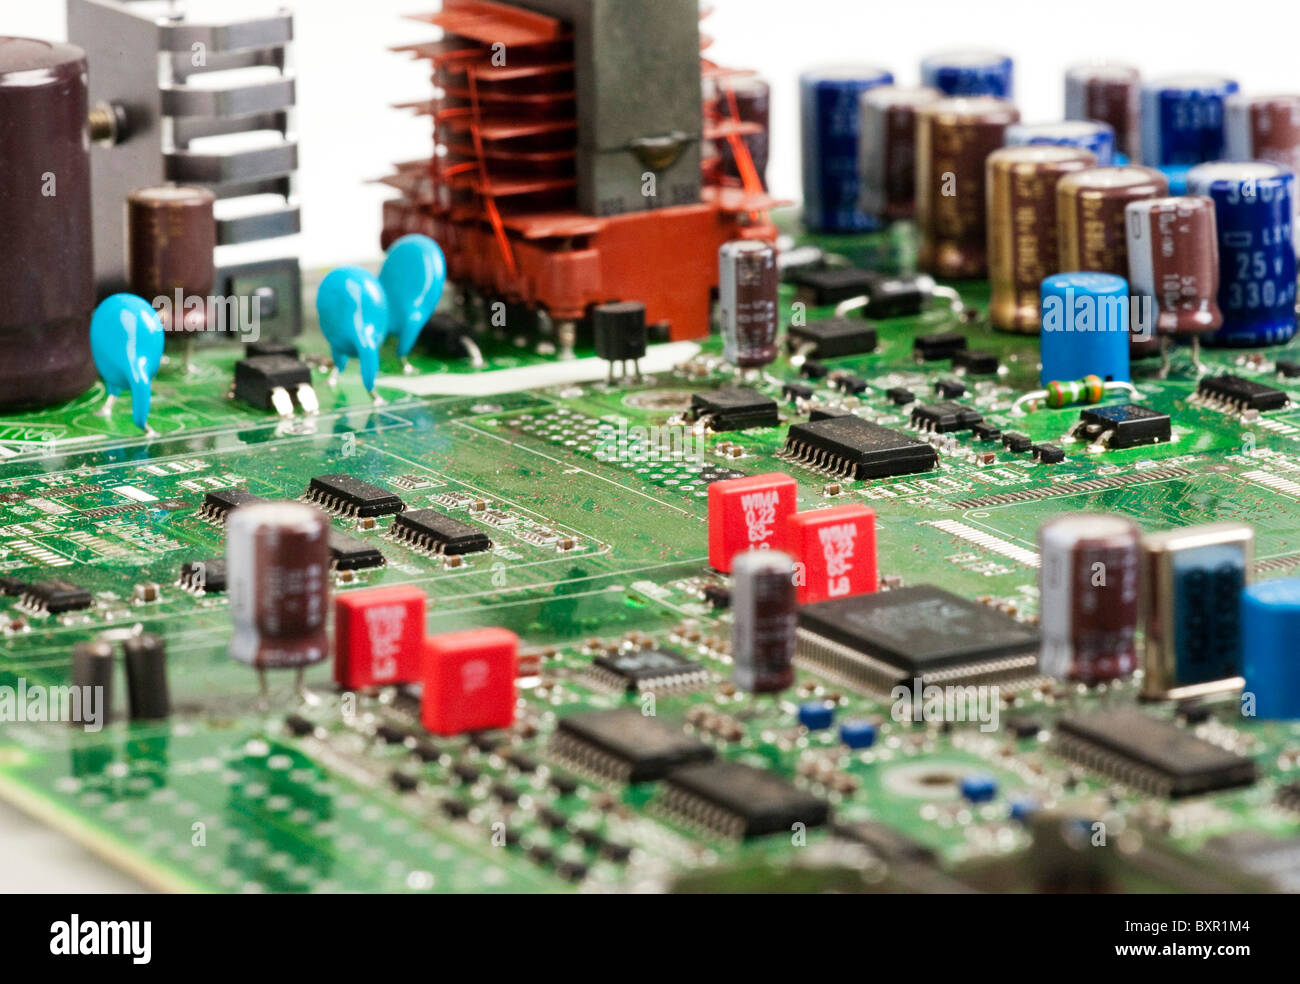 printed circuit board showing various electronic components - Stock Image